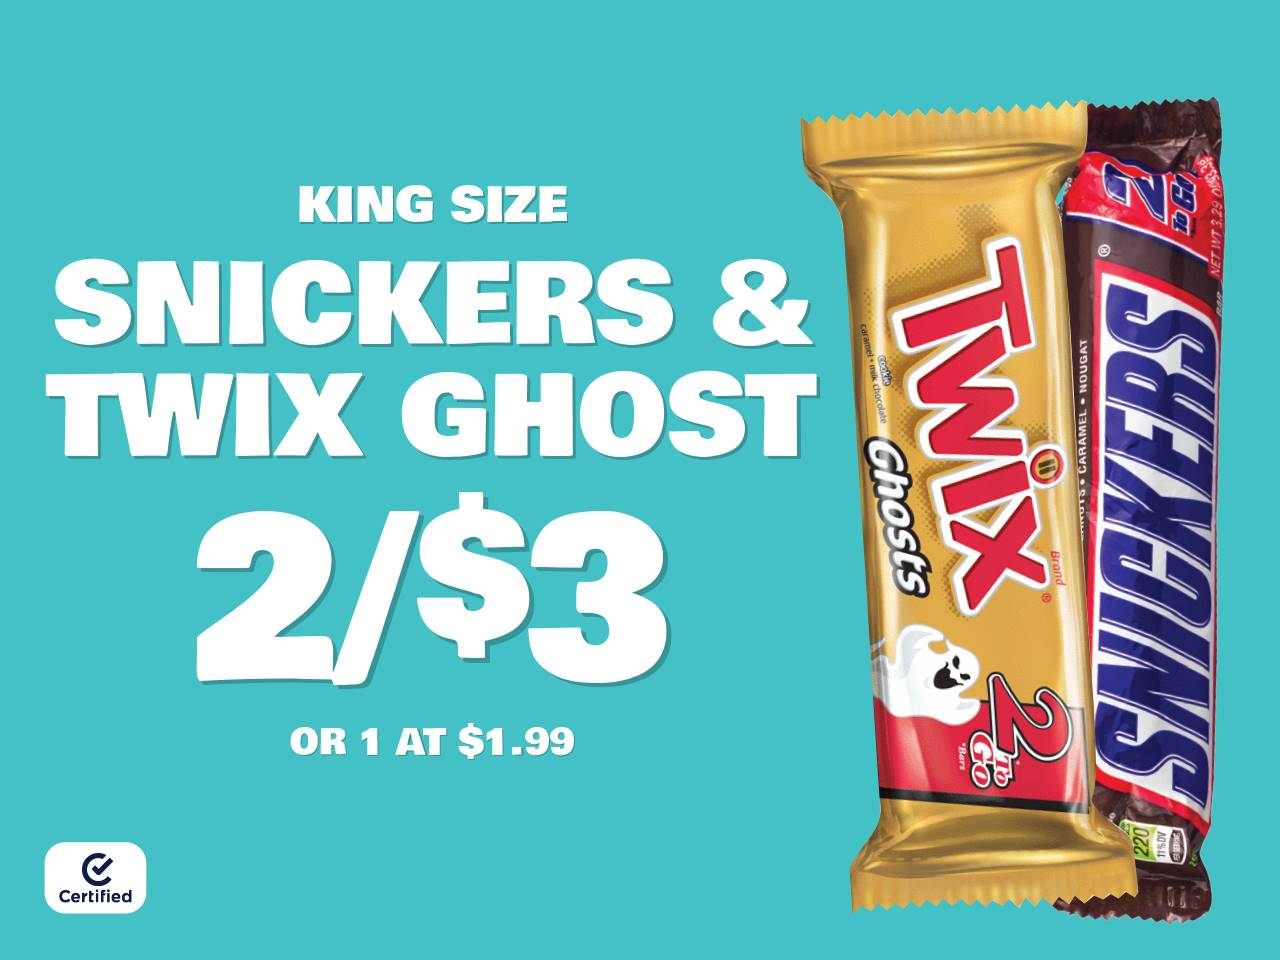 KS Snickers & Twix Ghost 2 for $3 or 1 at $1.99